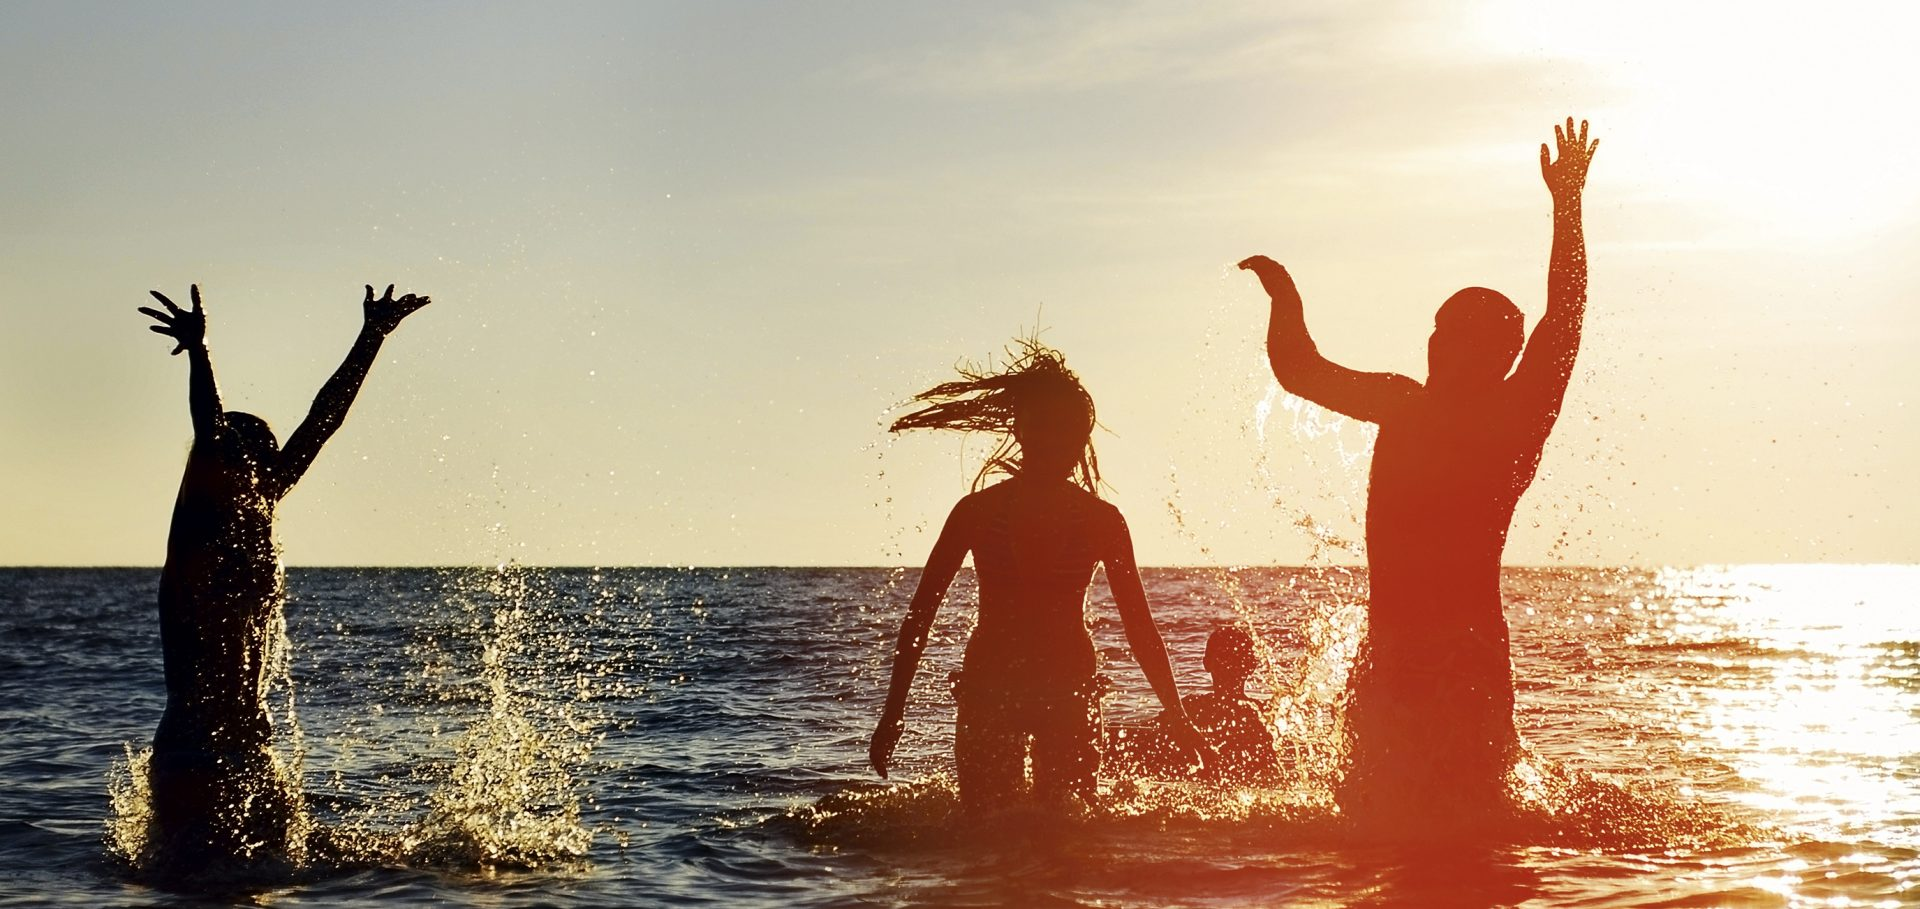 Vancouver heat wave: 10 excellent ways to cool down